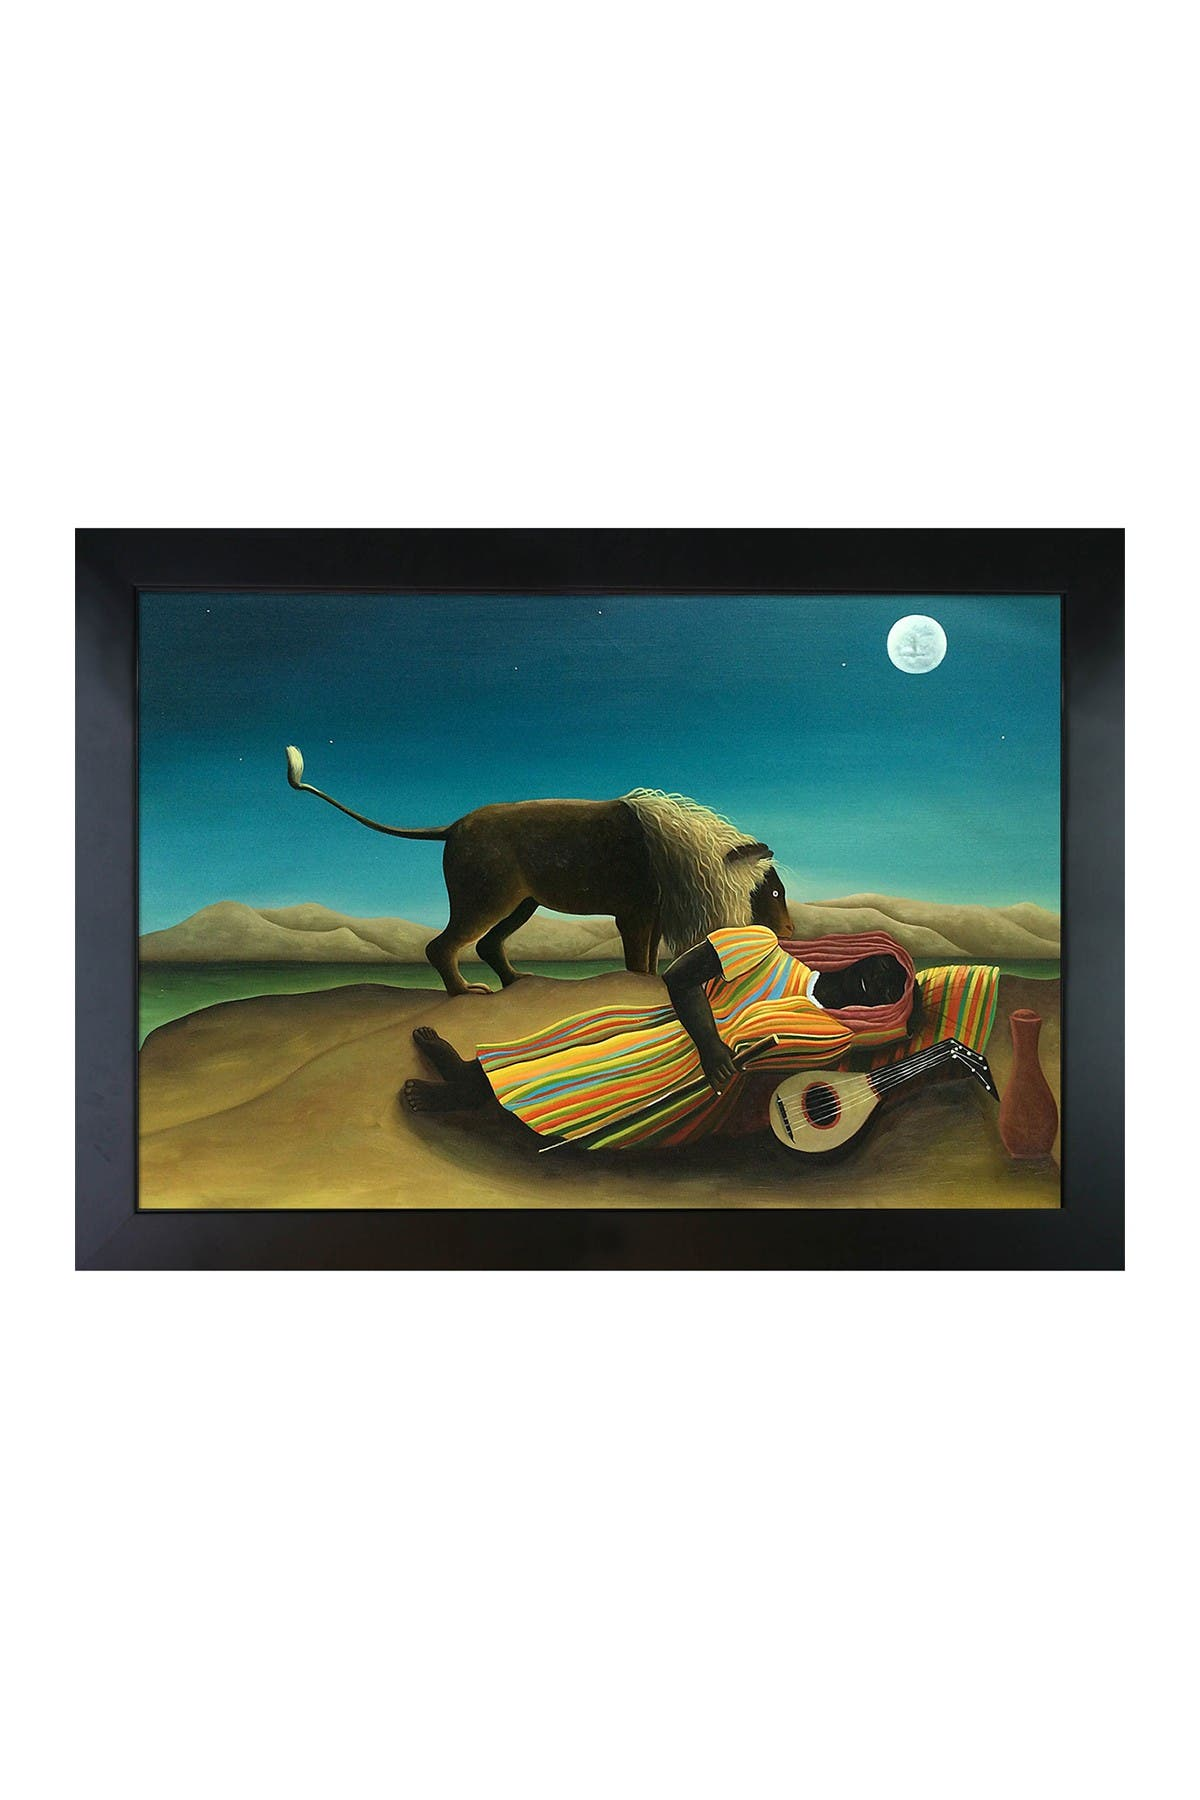 The Sleeping Gypsy - Framed Oil reproduction of an Original Painting by Henri Rousseau at Nordstrom Rack